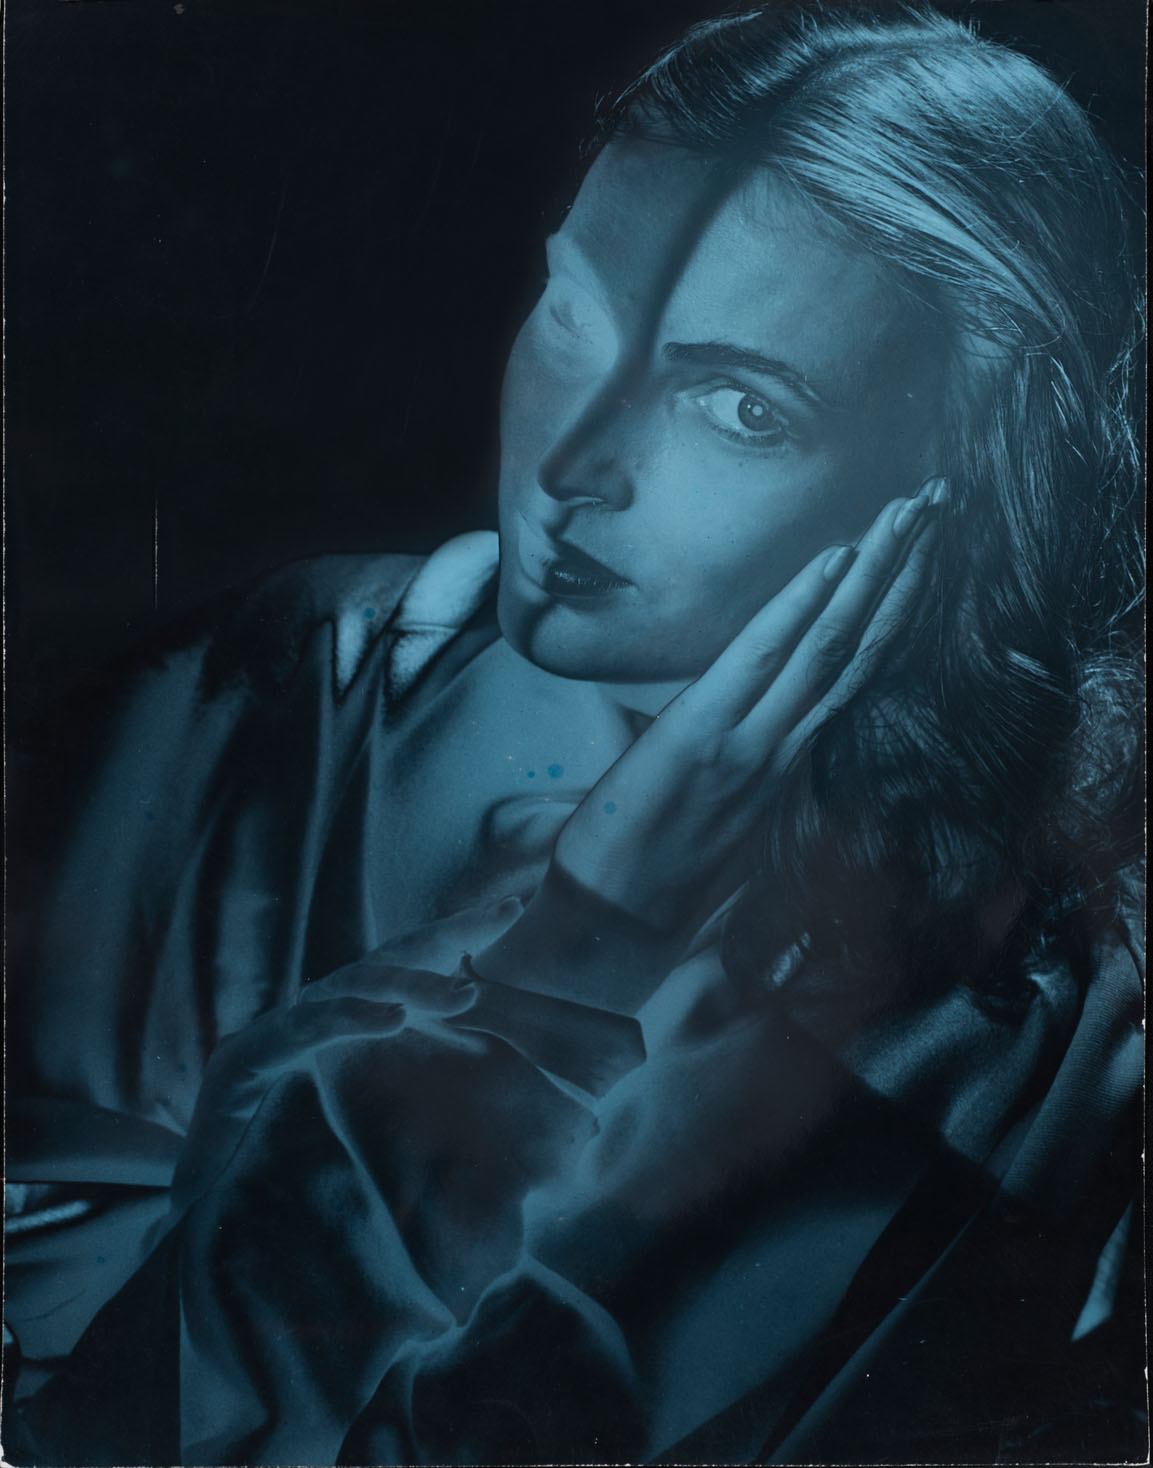 Erwin-Blumenfeld-Dyed-Blue-Solarized-model-with-Face-on-Hands-New-York-1946-Silver-Gelatin-Print-Courtesy-Osborne-Samuel